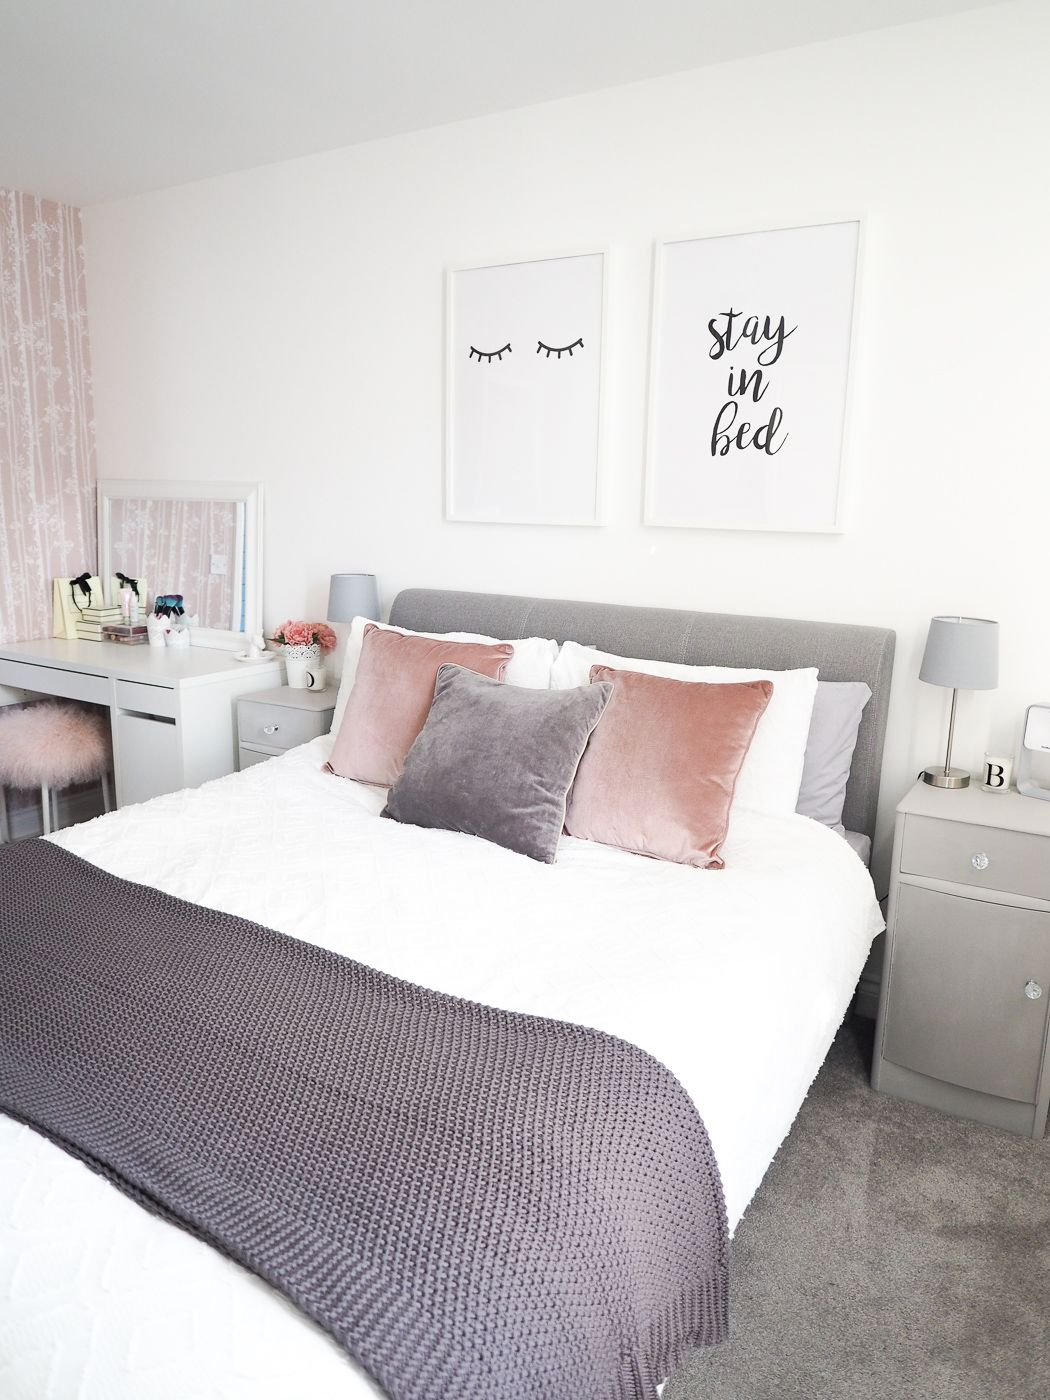 Grey And Pink Bedroom With Wallpaper